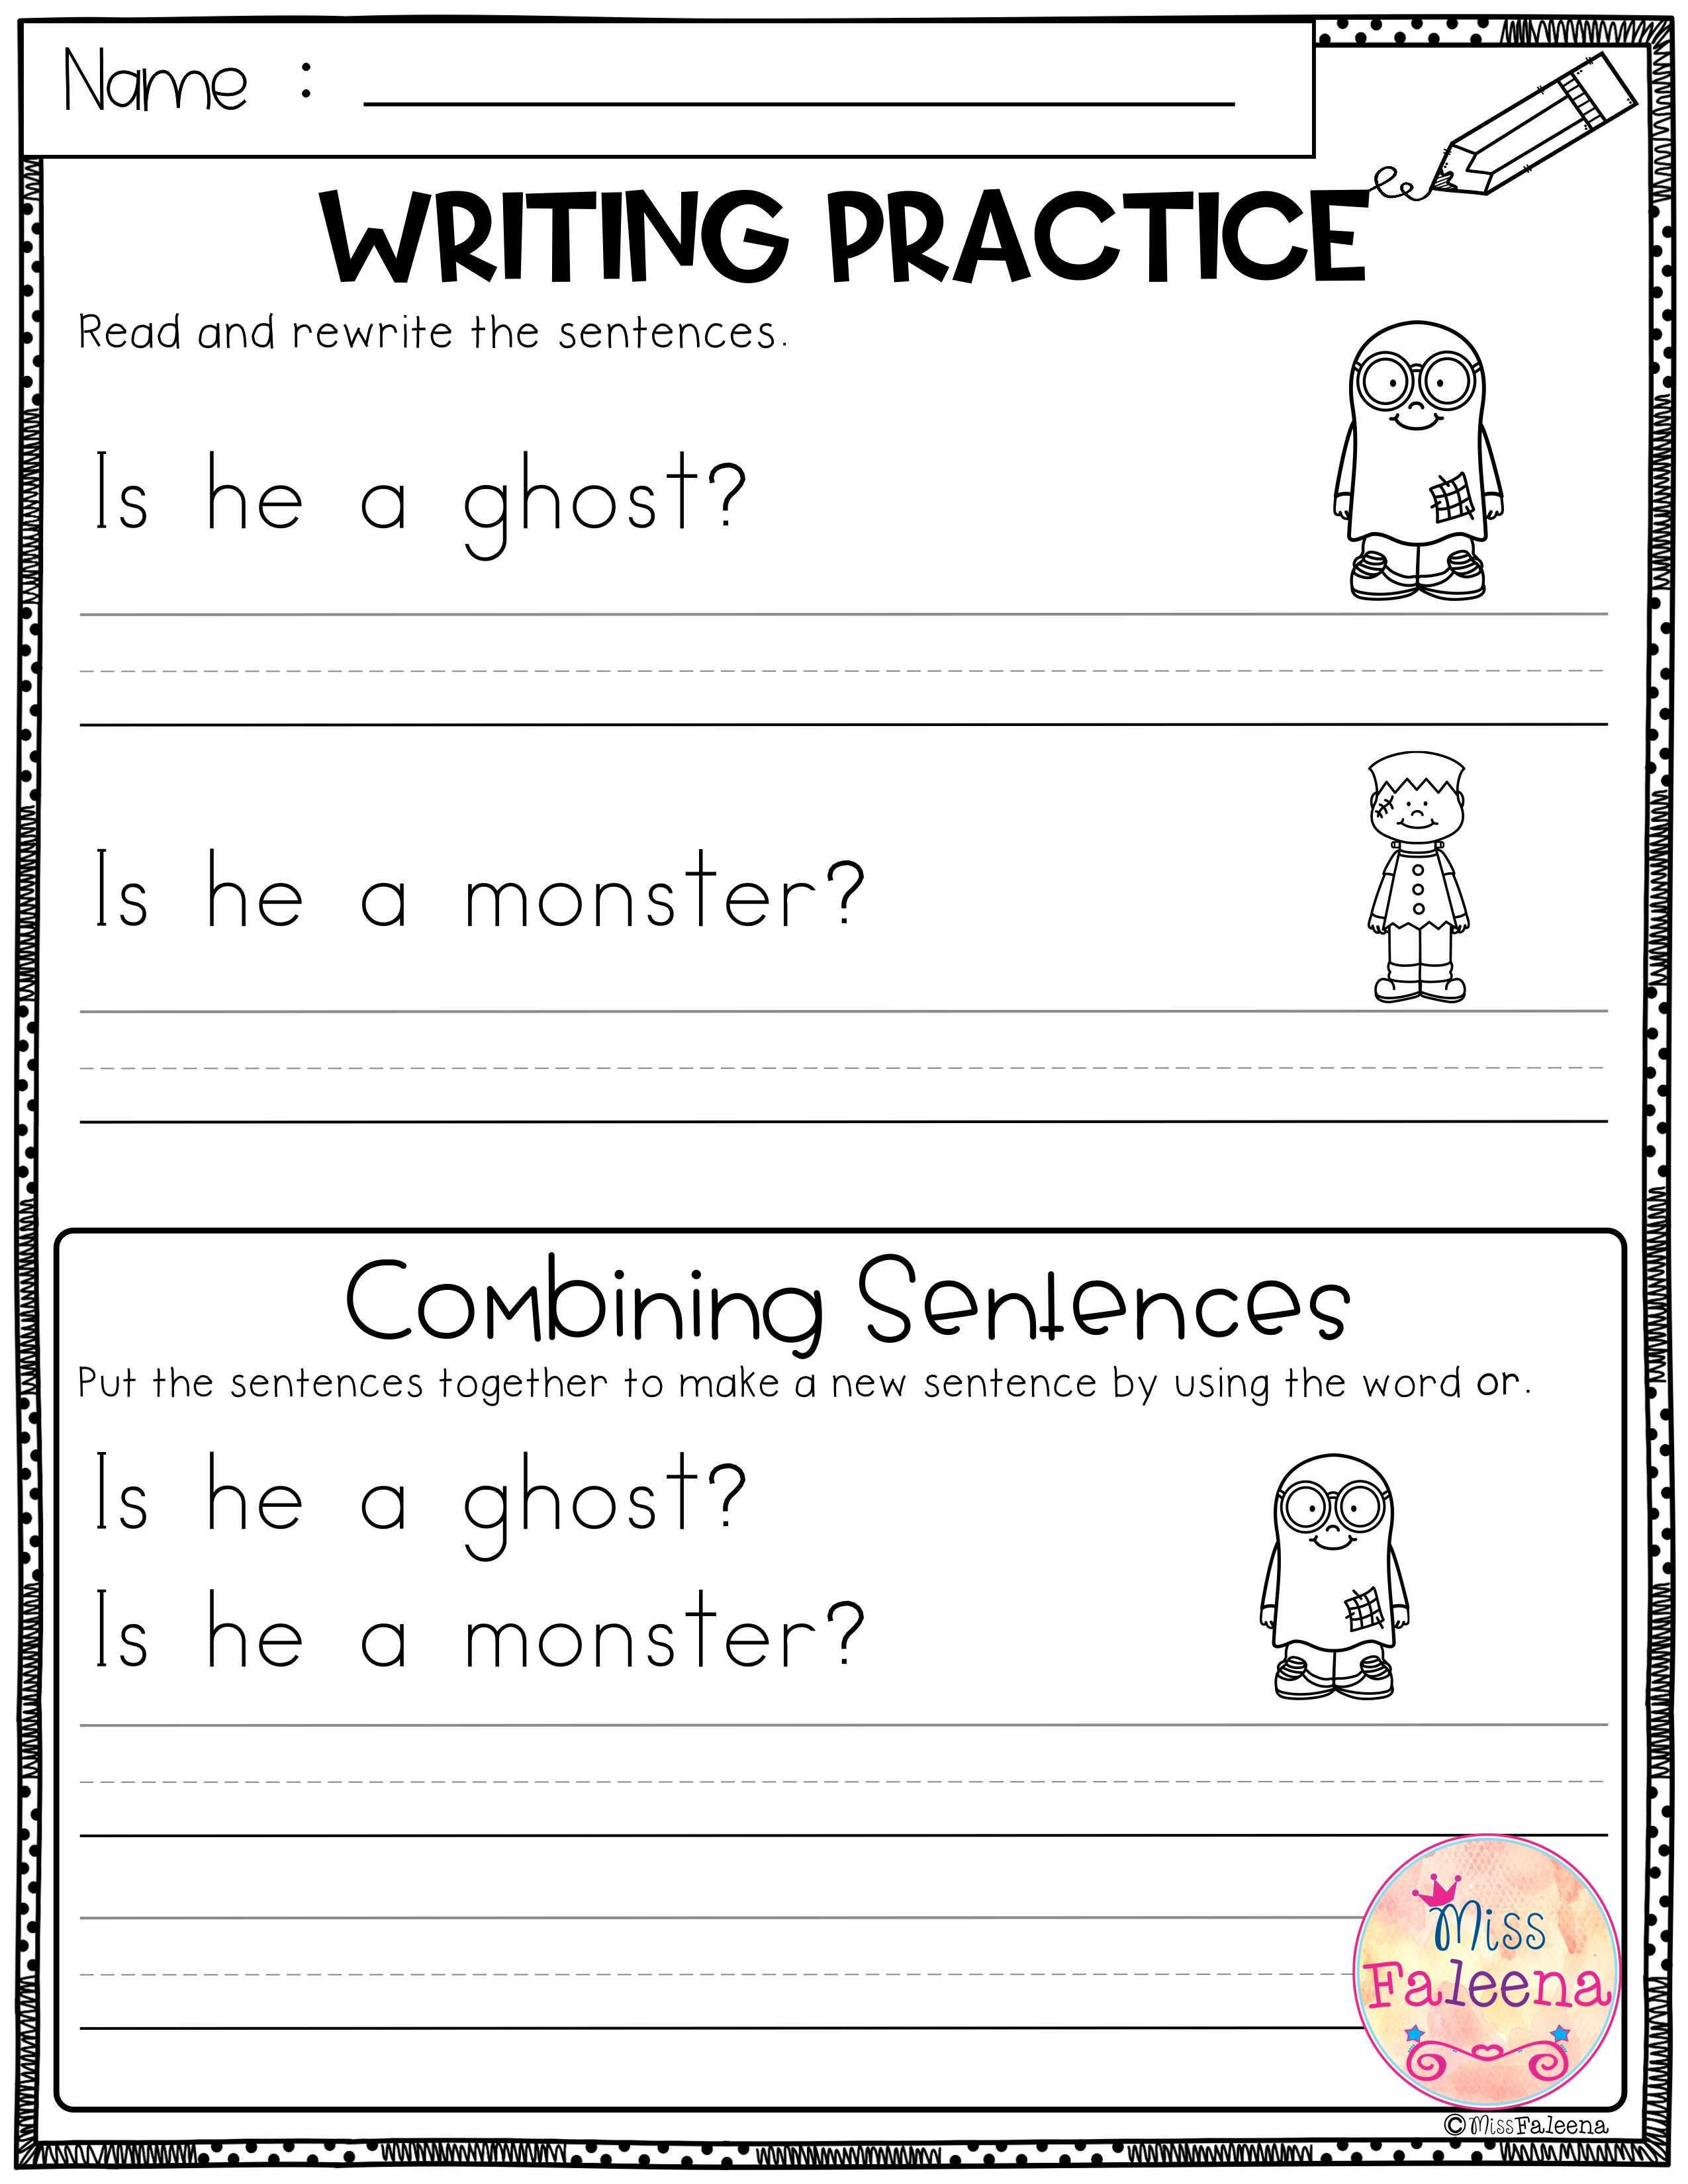 October Writing Practice Combining Sentences